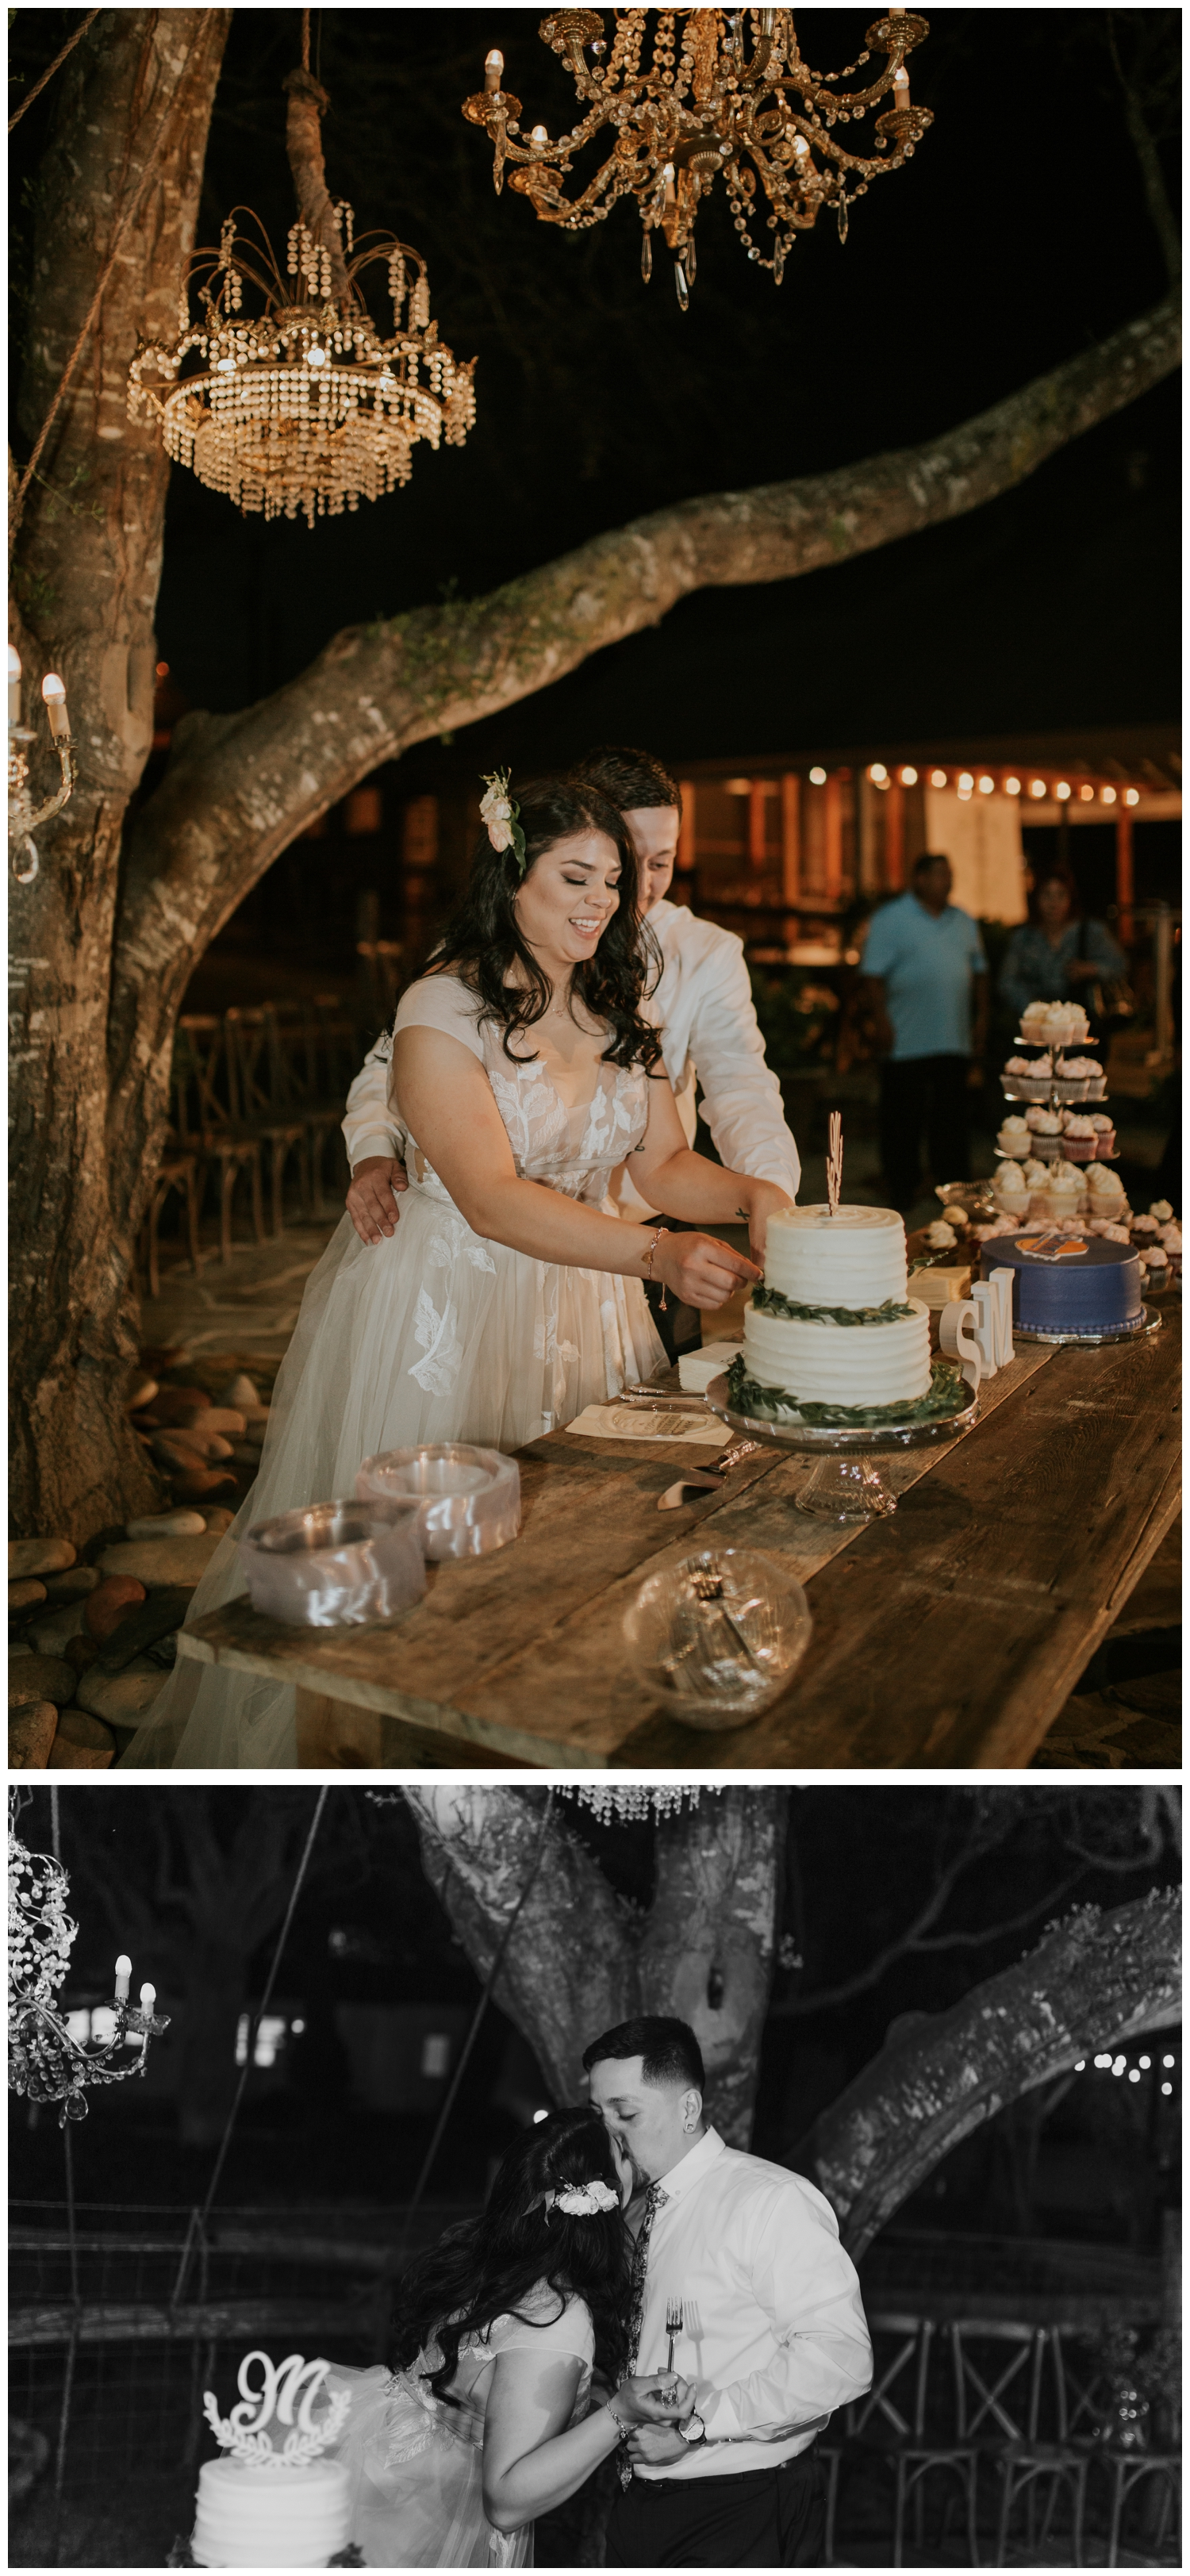 Sarah+Michael, Gruene Estate Wedding, San Antonio, Contista Productions Wedding Photography_0080.jpg